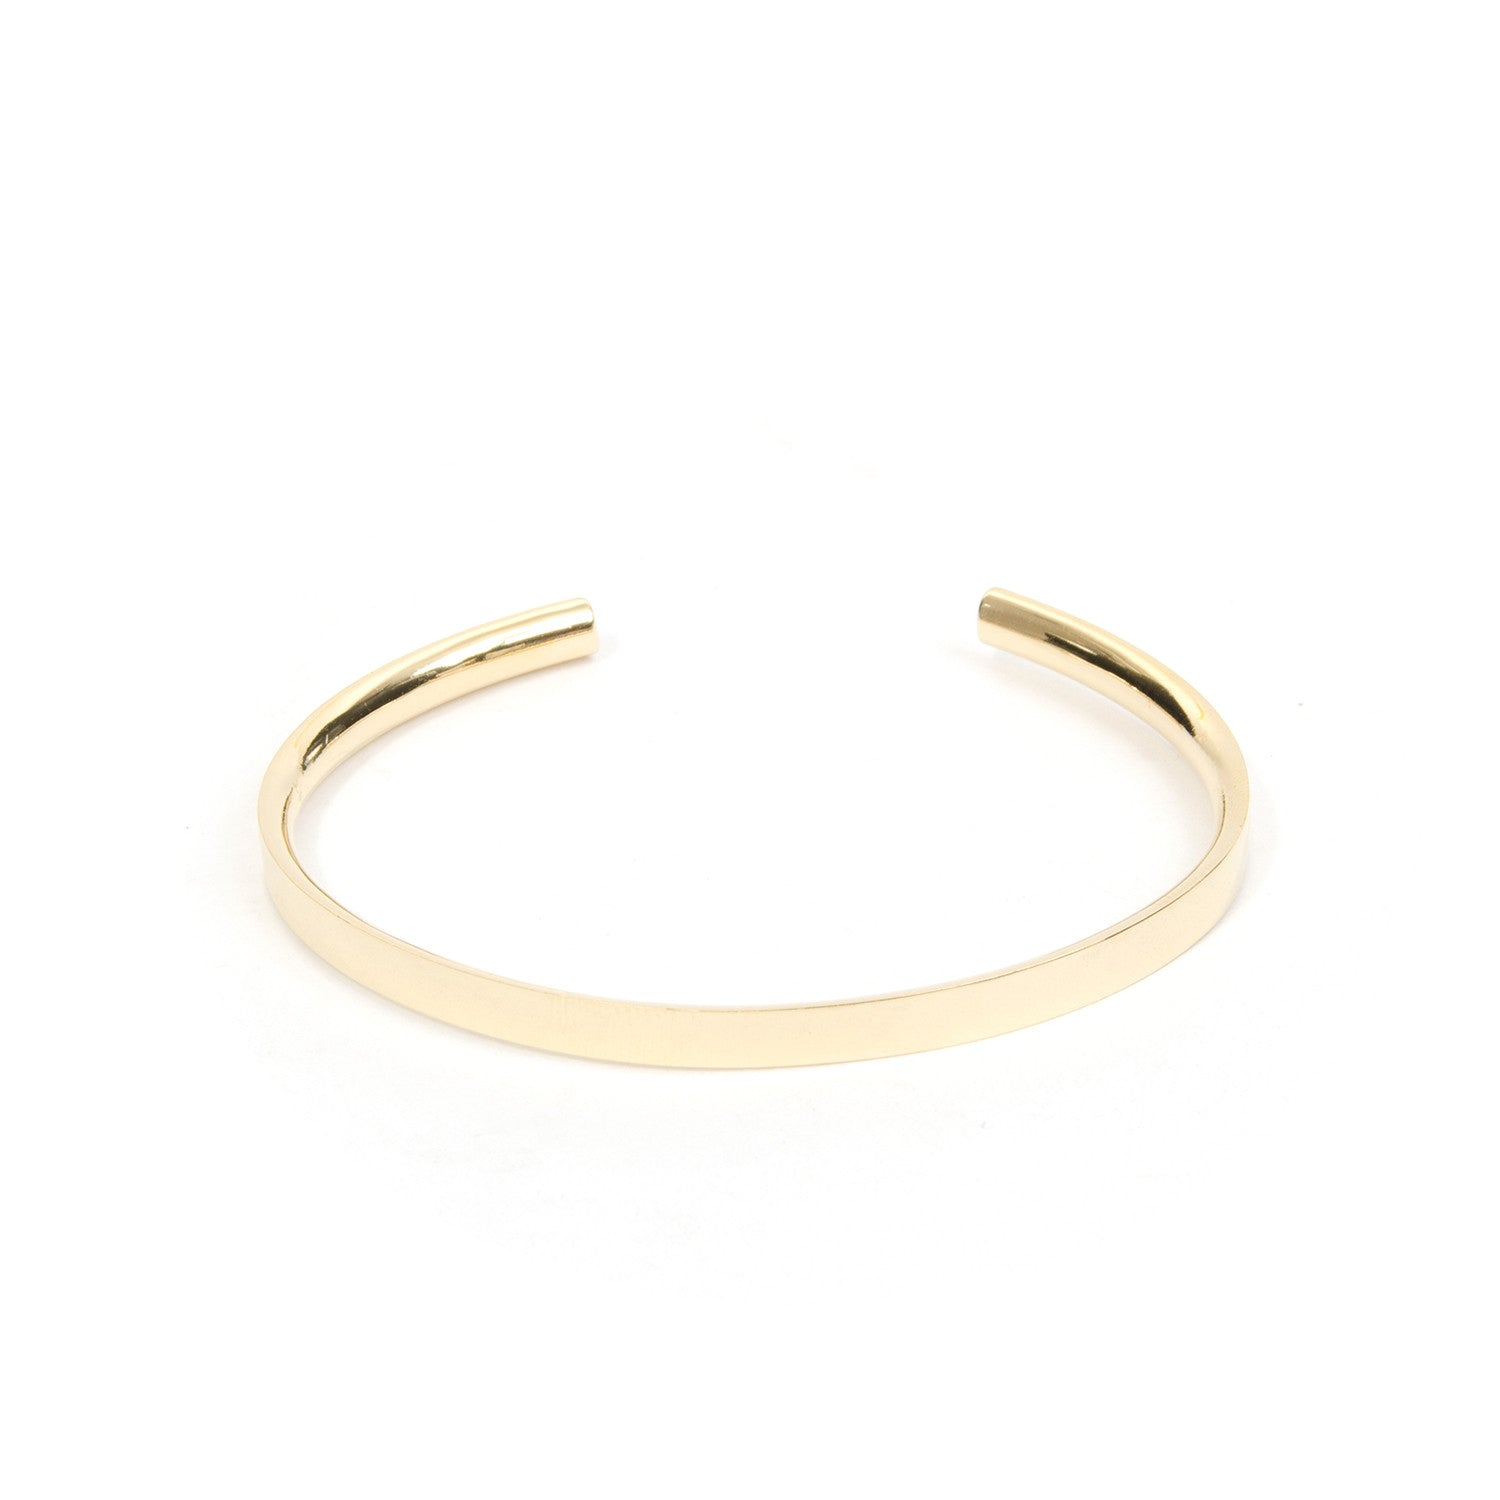 The Boyscouts Bracelet 'Facet' 18kt Gold Plated - Concrete